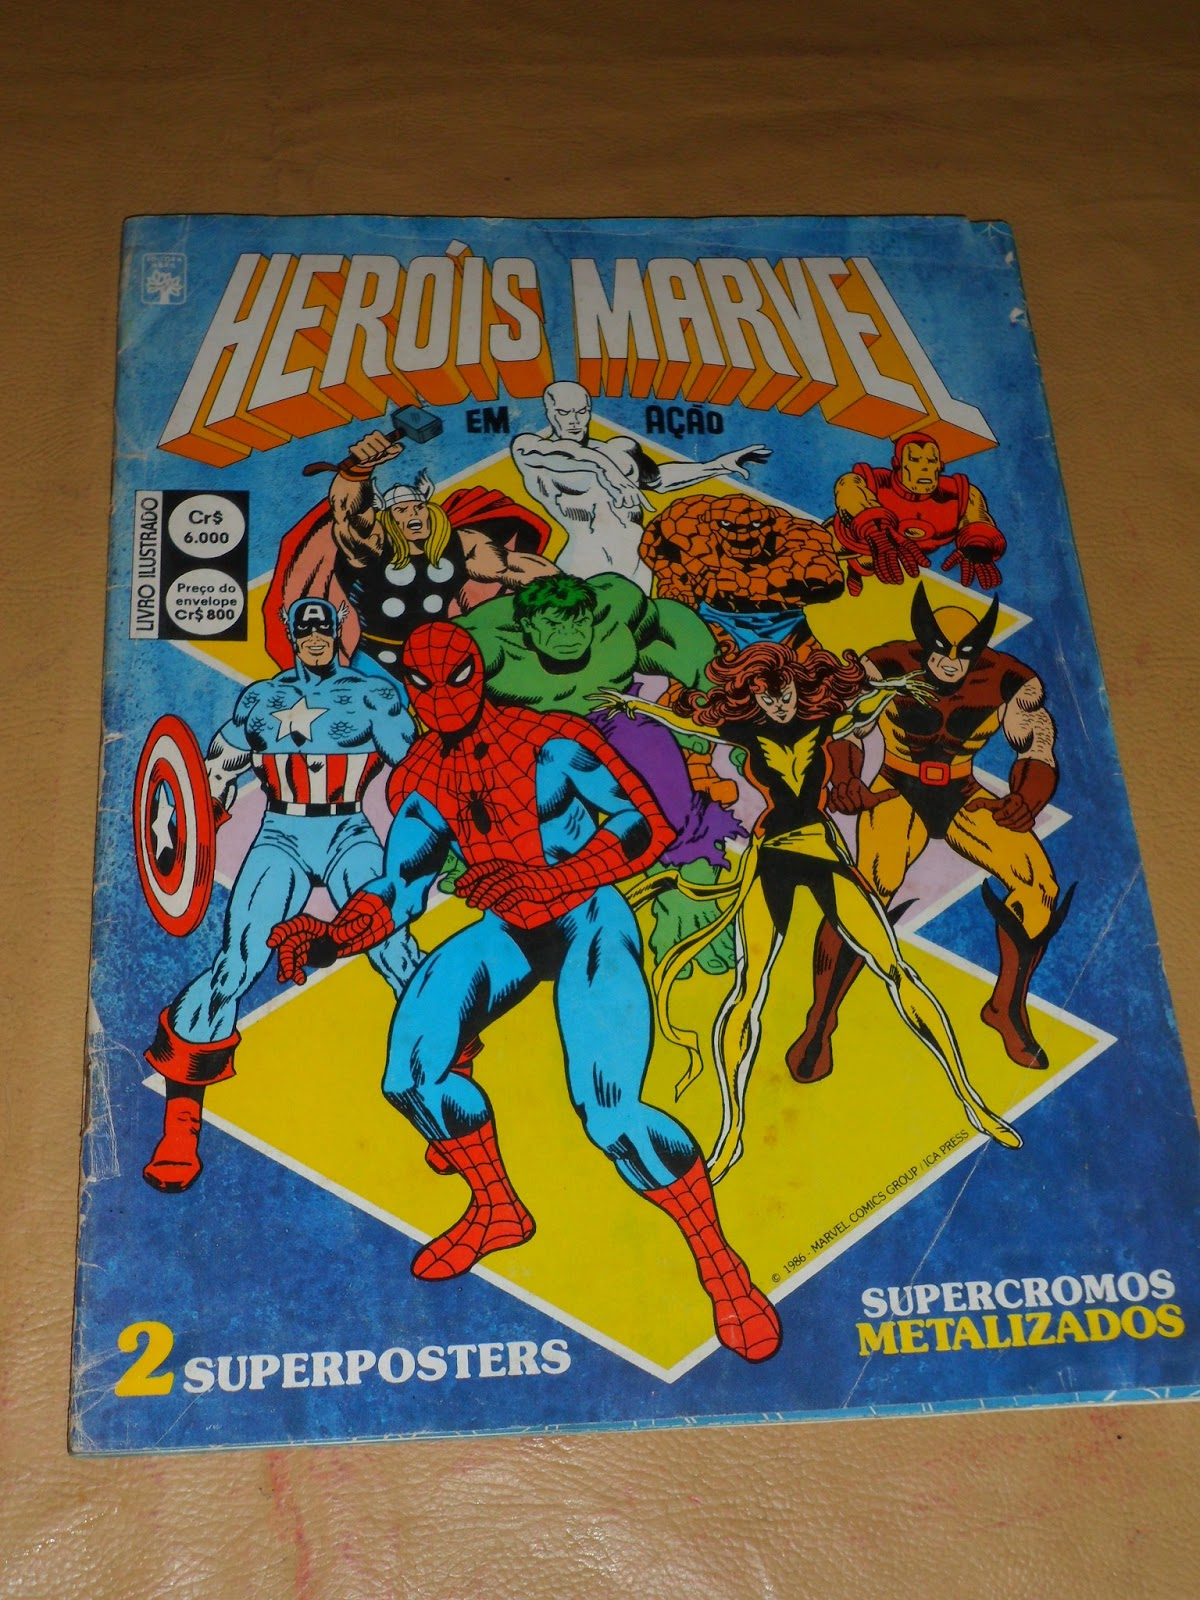 Álbum de figuritas héroes marvel en acción 1986 editorial abril